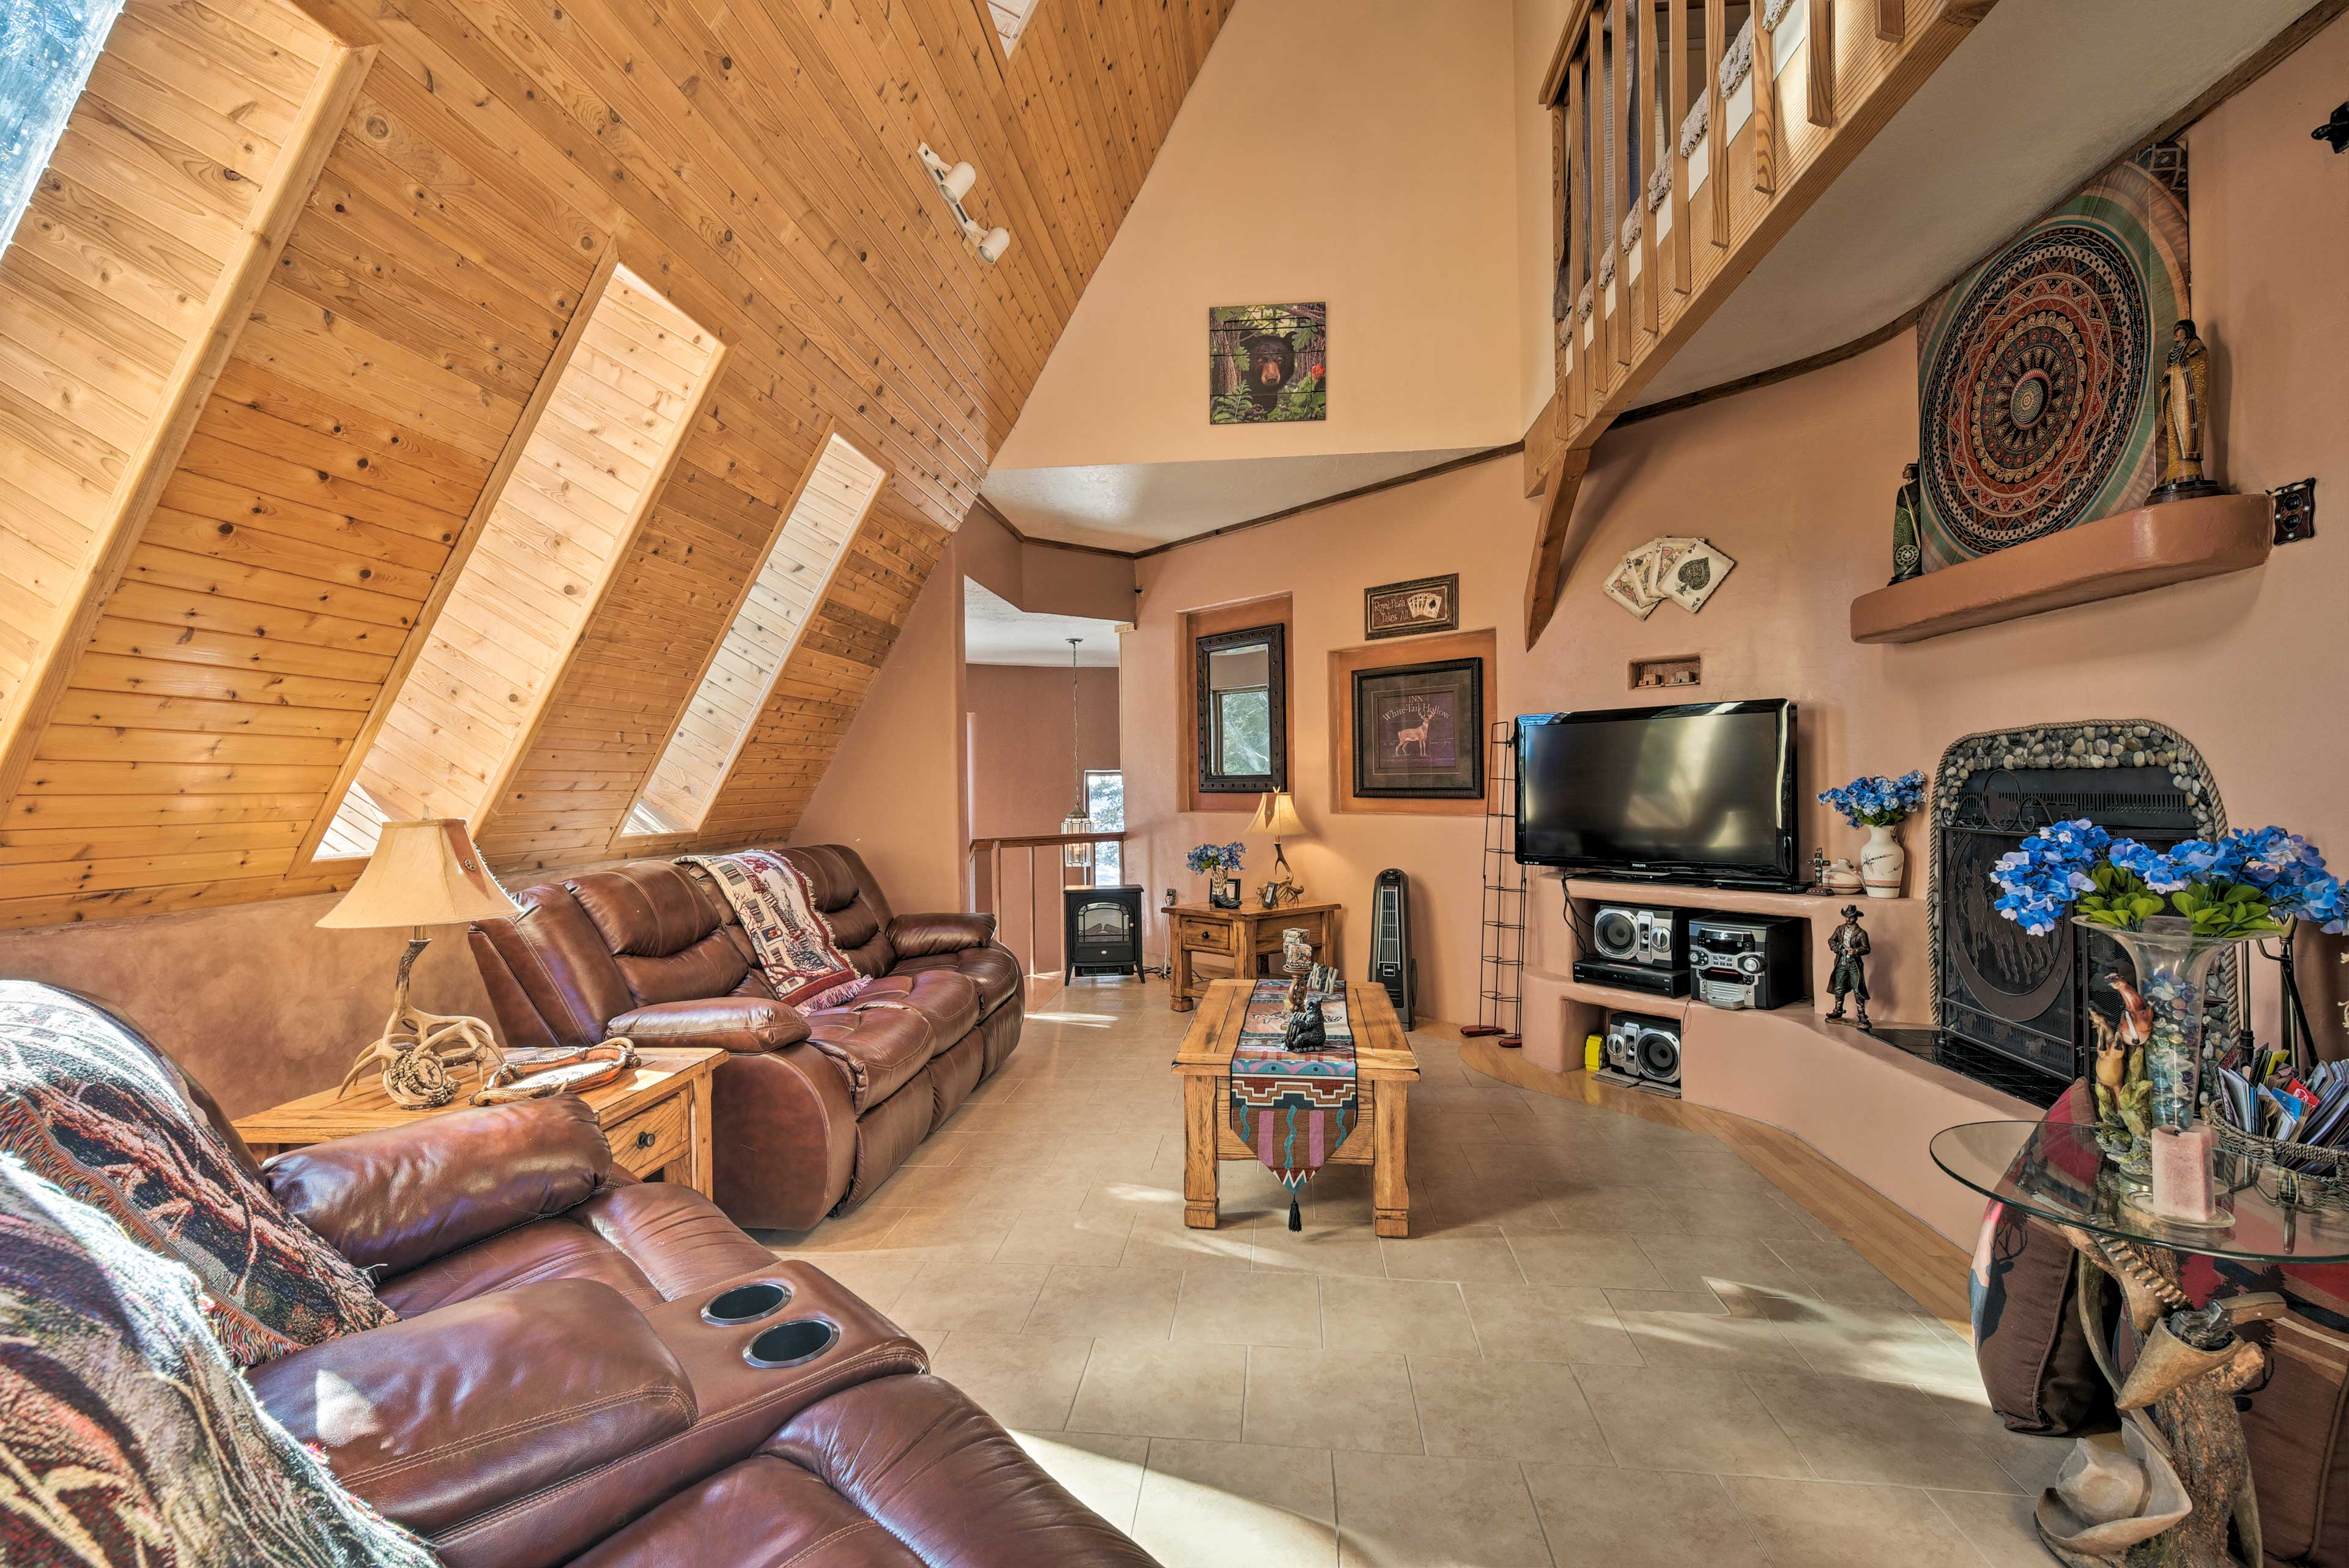 Natural light illuminates the southwestern interior with a TV and fireplace.